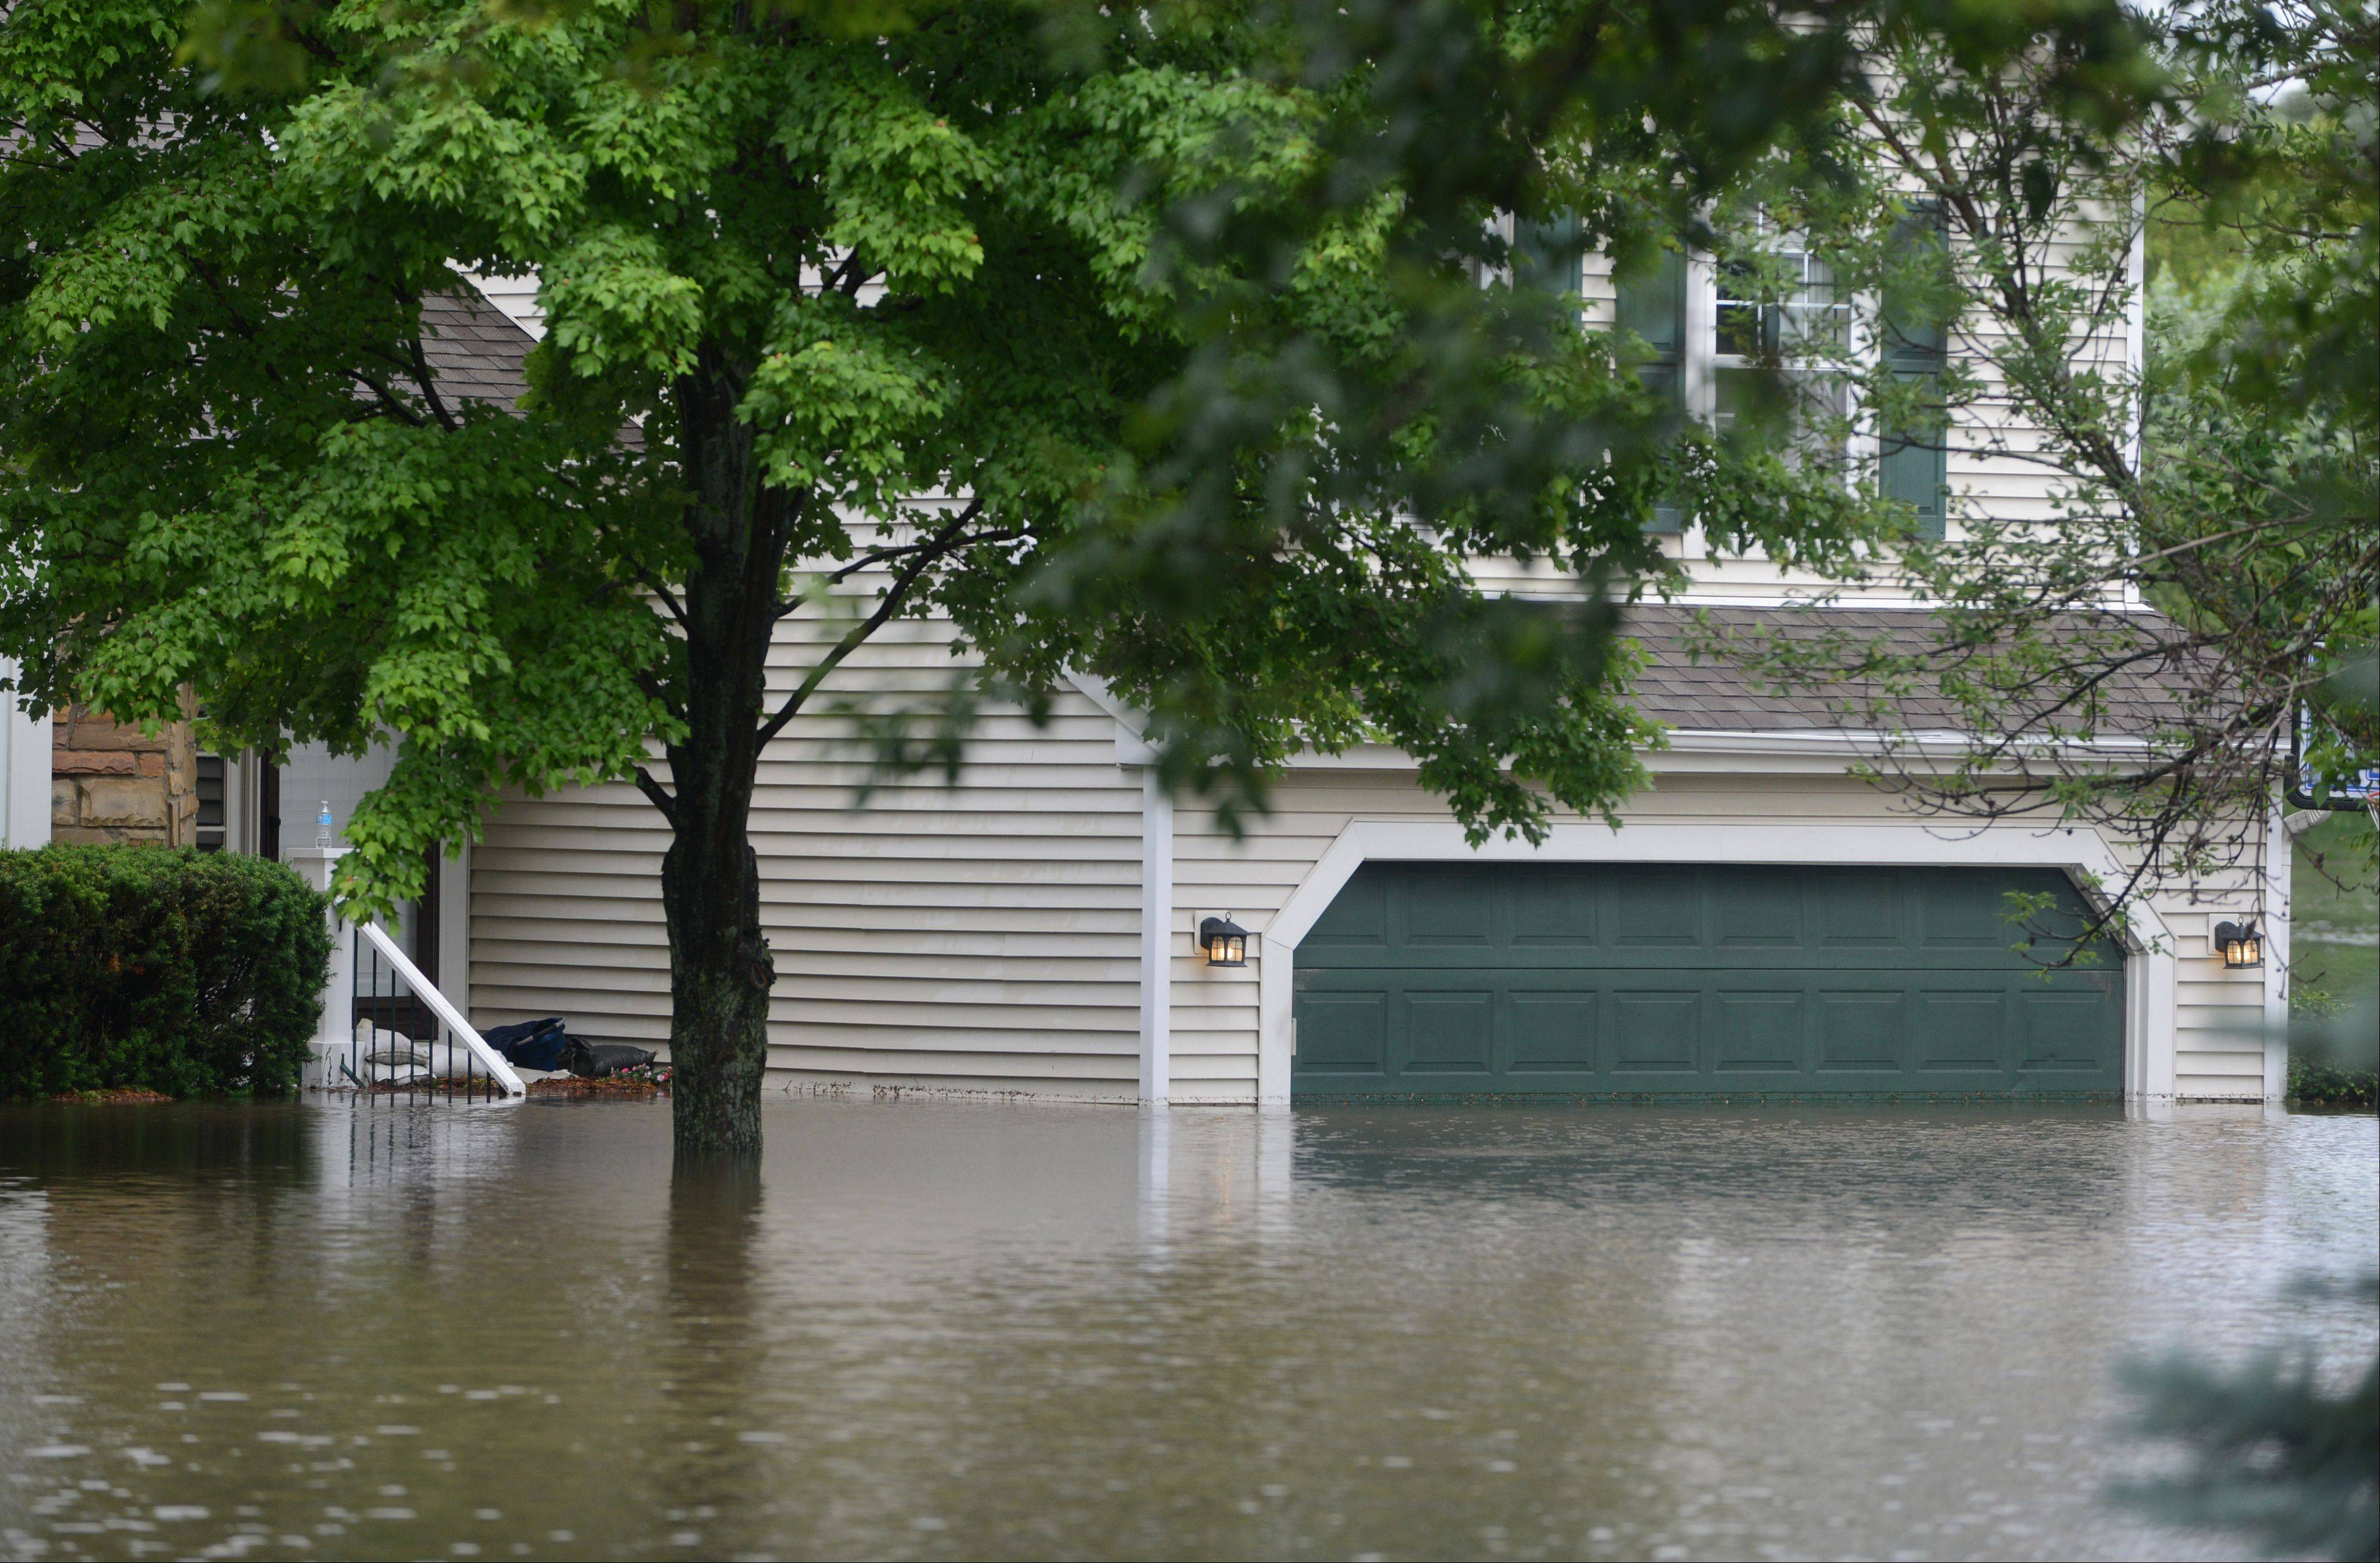 The home of KC Faetz Thistle Lane in Lake Zurich was left underwater after heavy storms hit the area Wednesday morning.